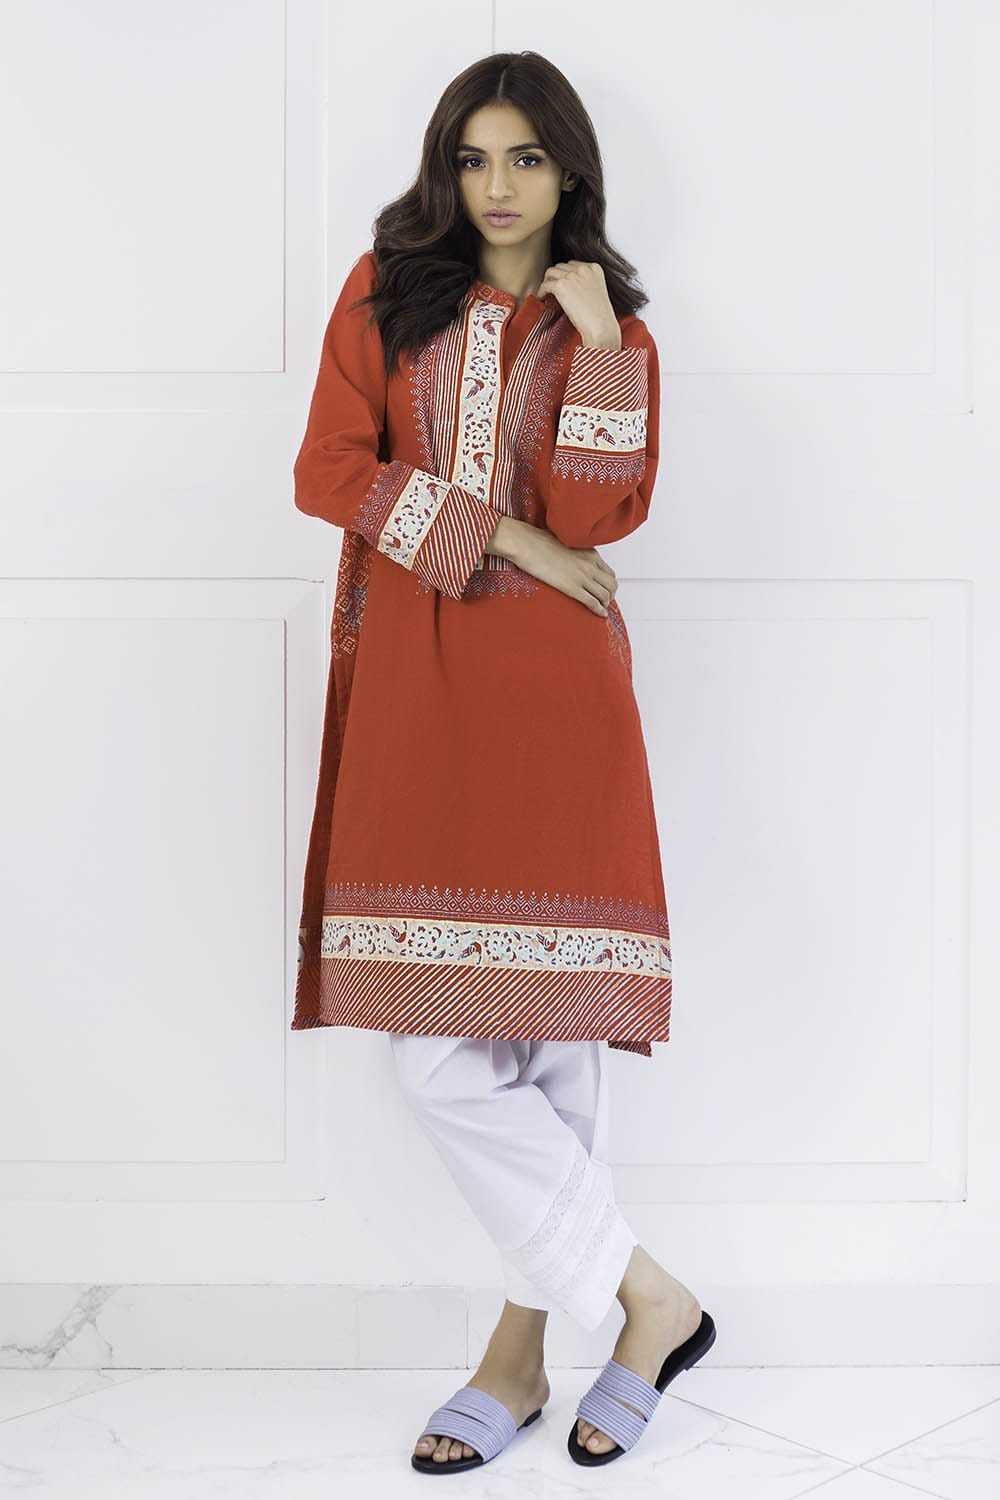 Shehrnaz - Red Karandi Shirt with Block Print